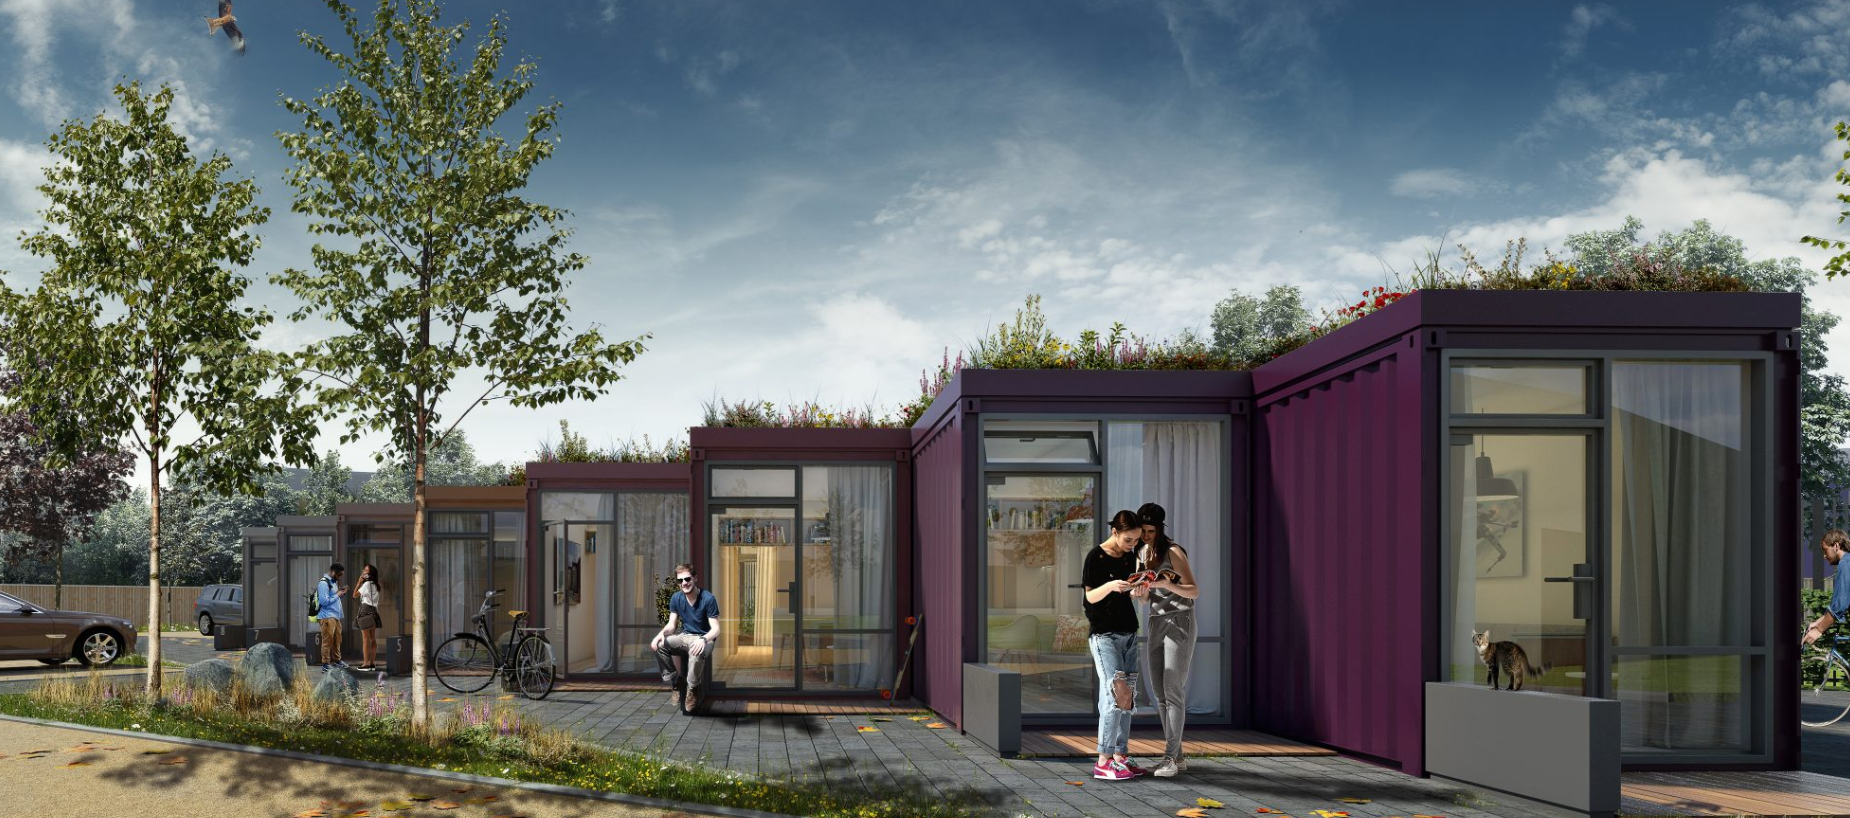 Shipping container living - FBM architects